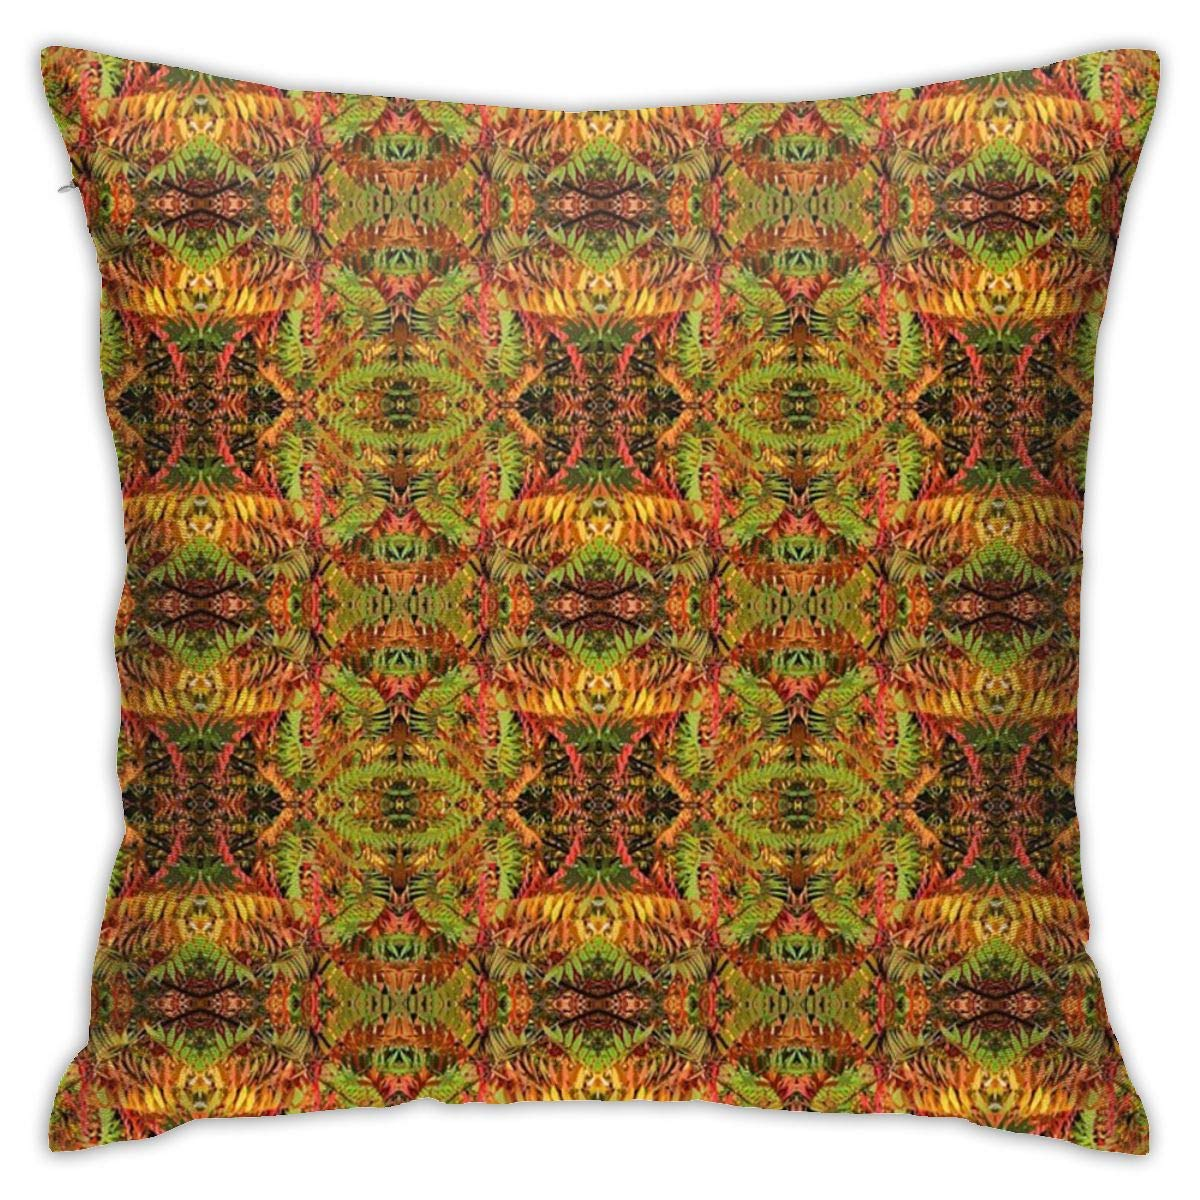 Amazon.com: Yunshm Leaves Autumn Design Pattern Kaleidoscope ...